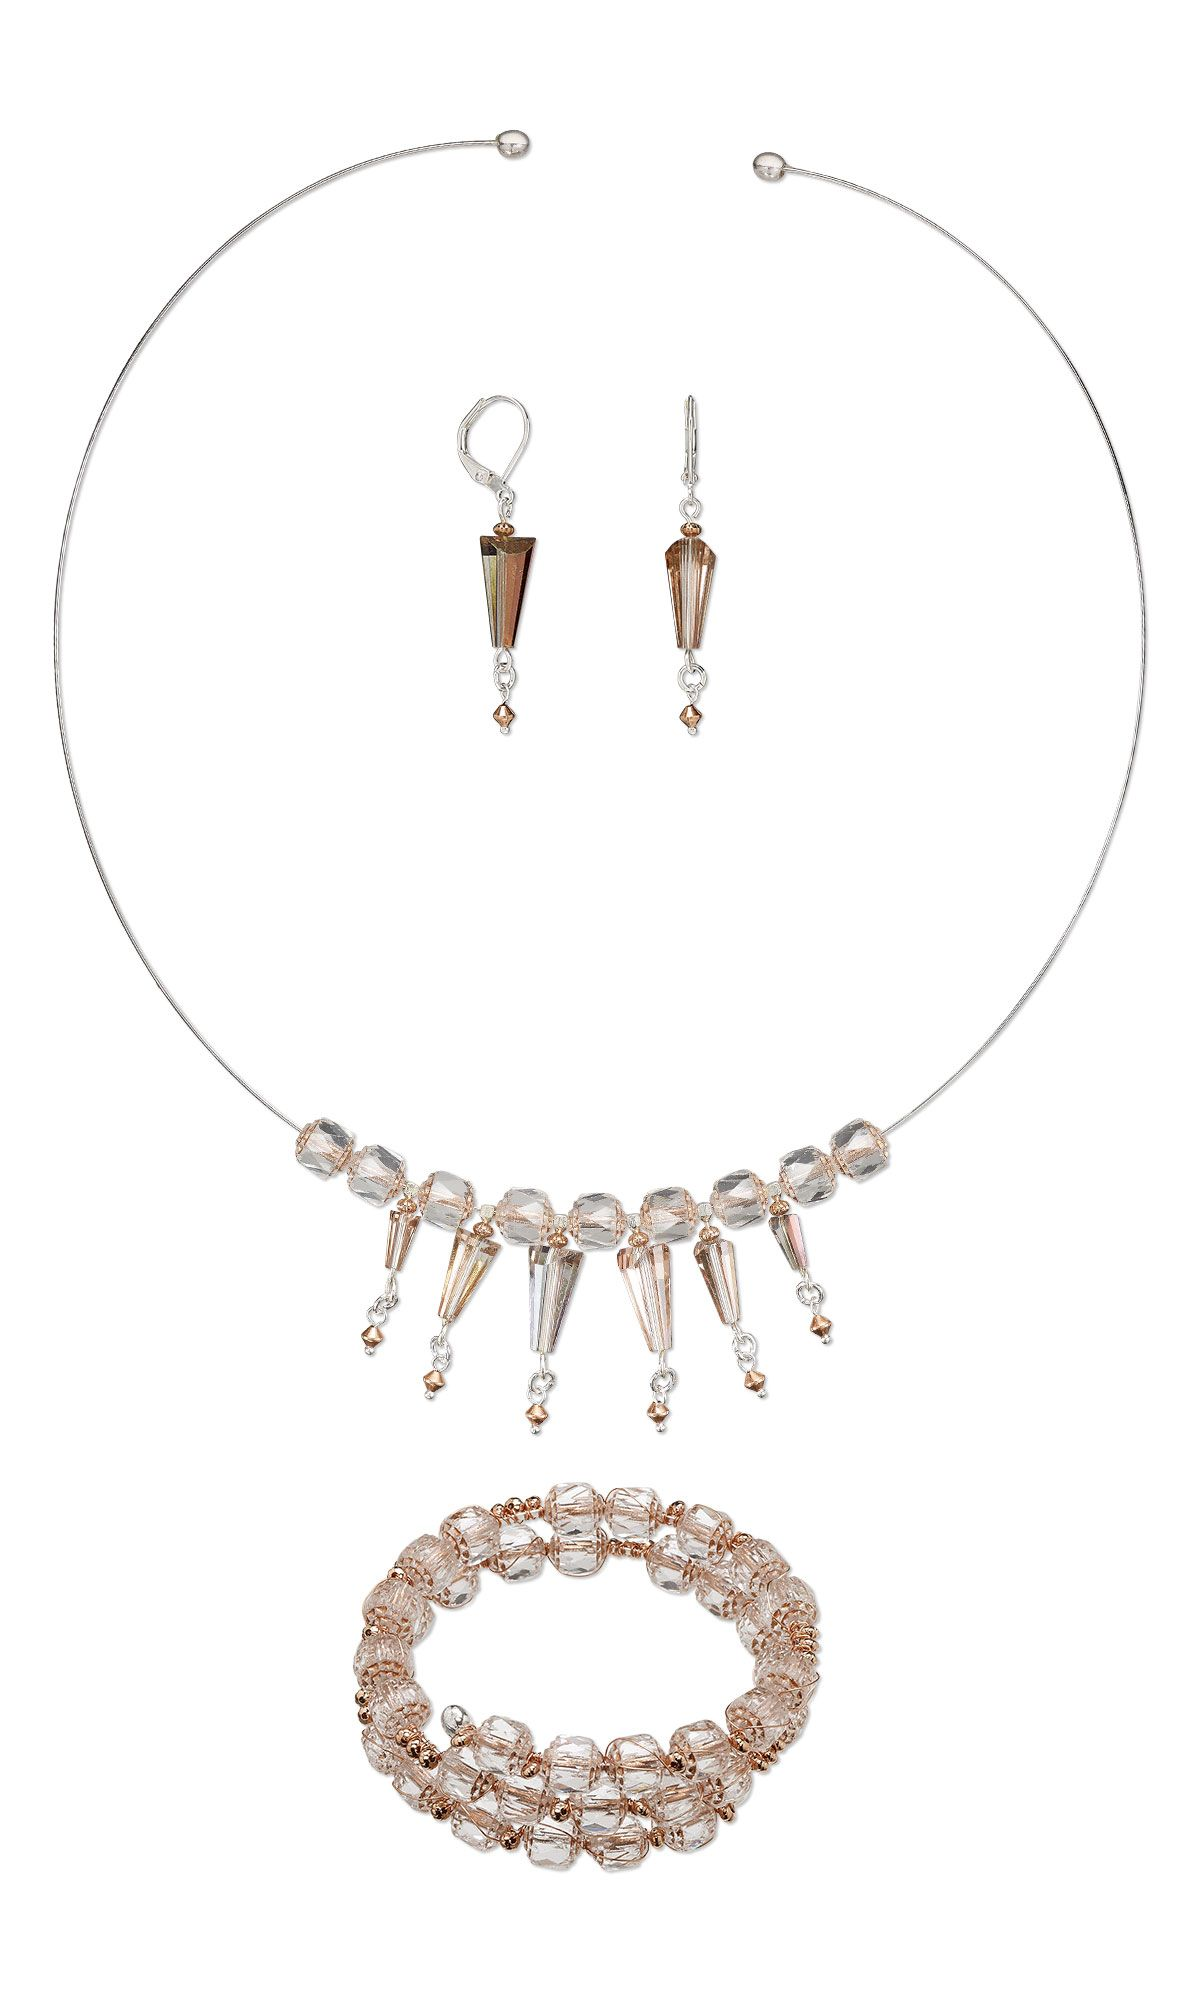 Jewelry Design - Memory Wire Necklace, Bracelet and Earring Set with ...